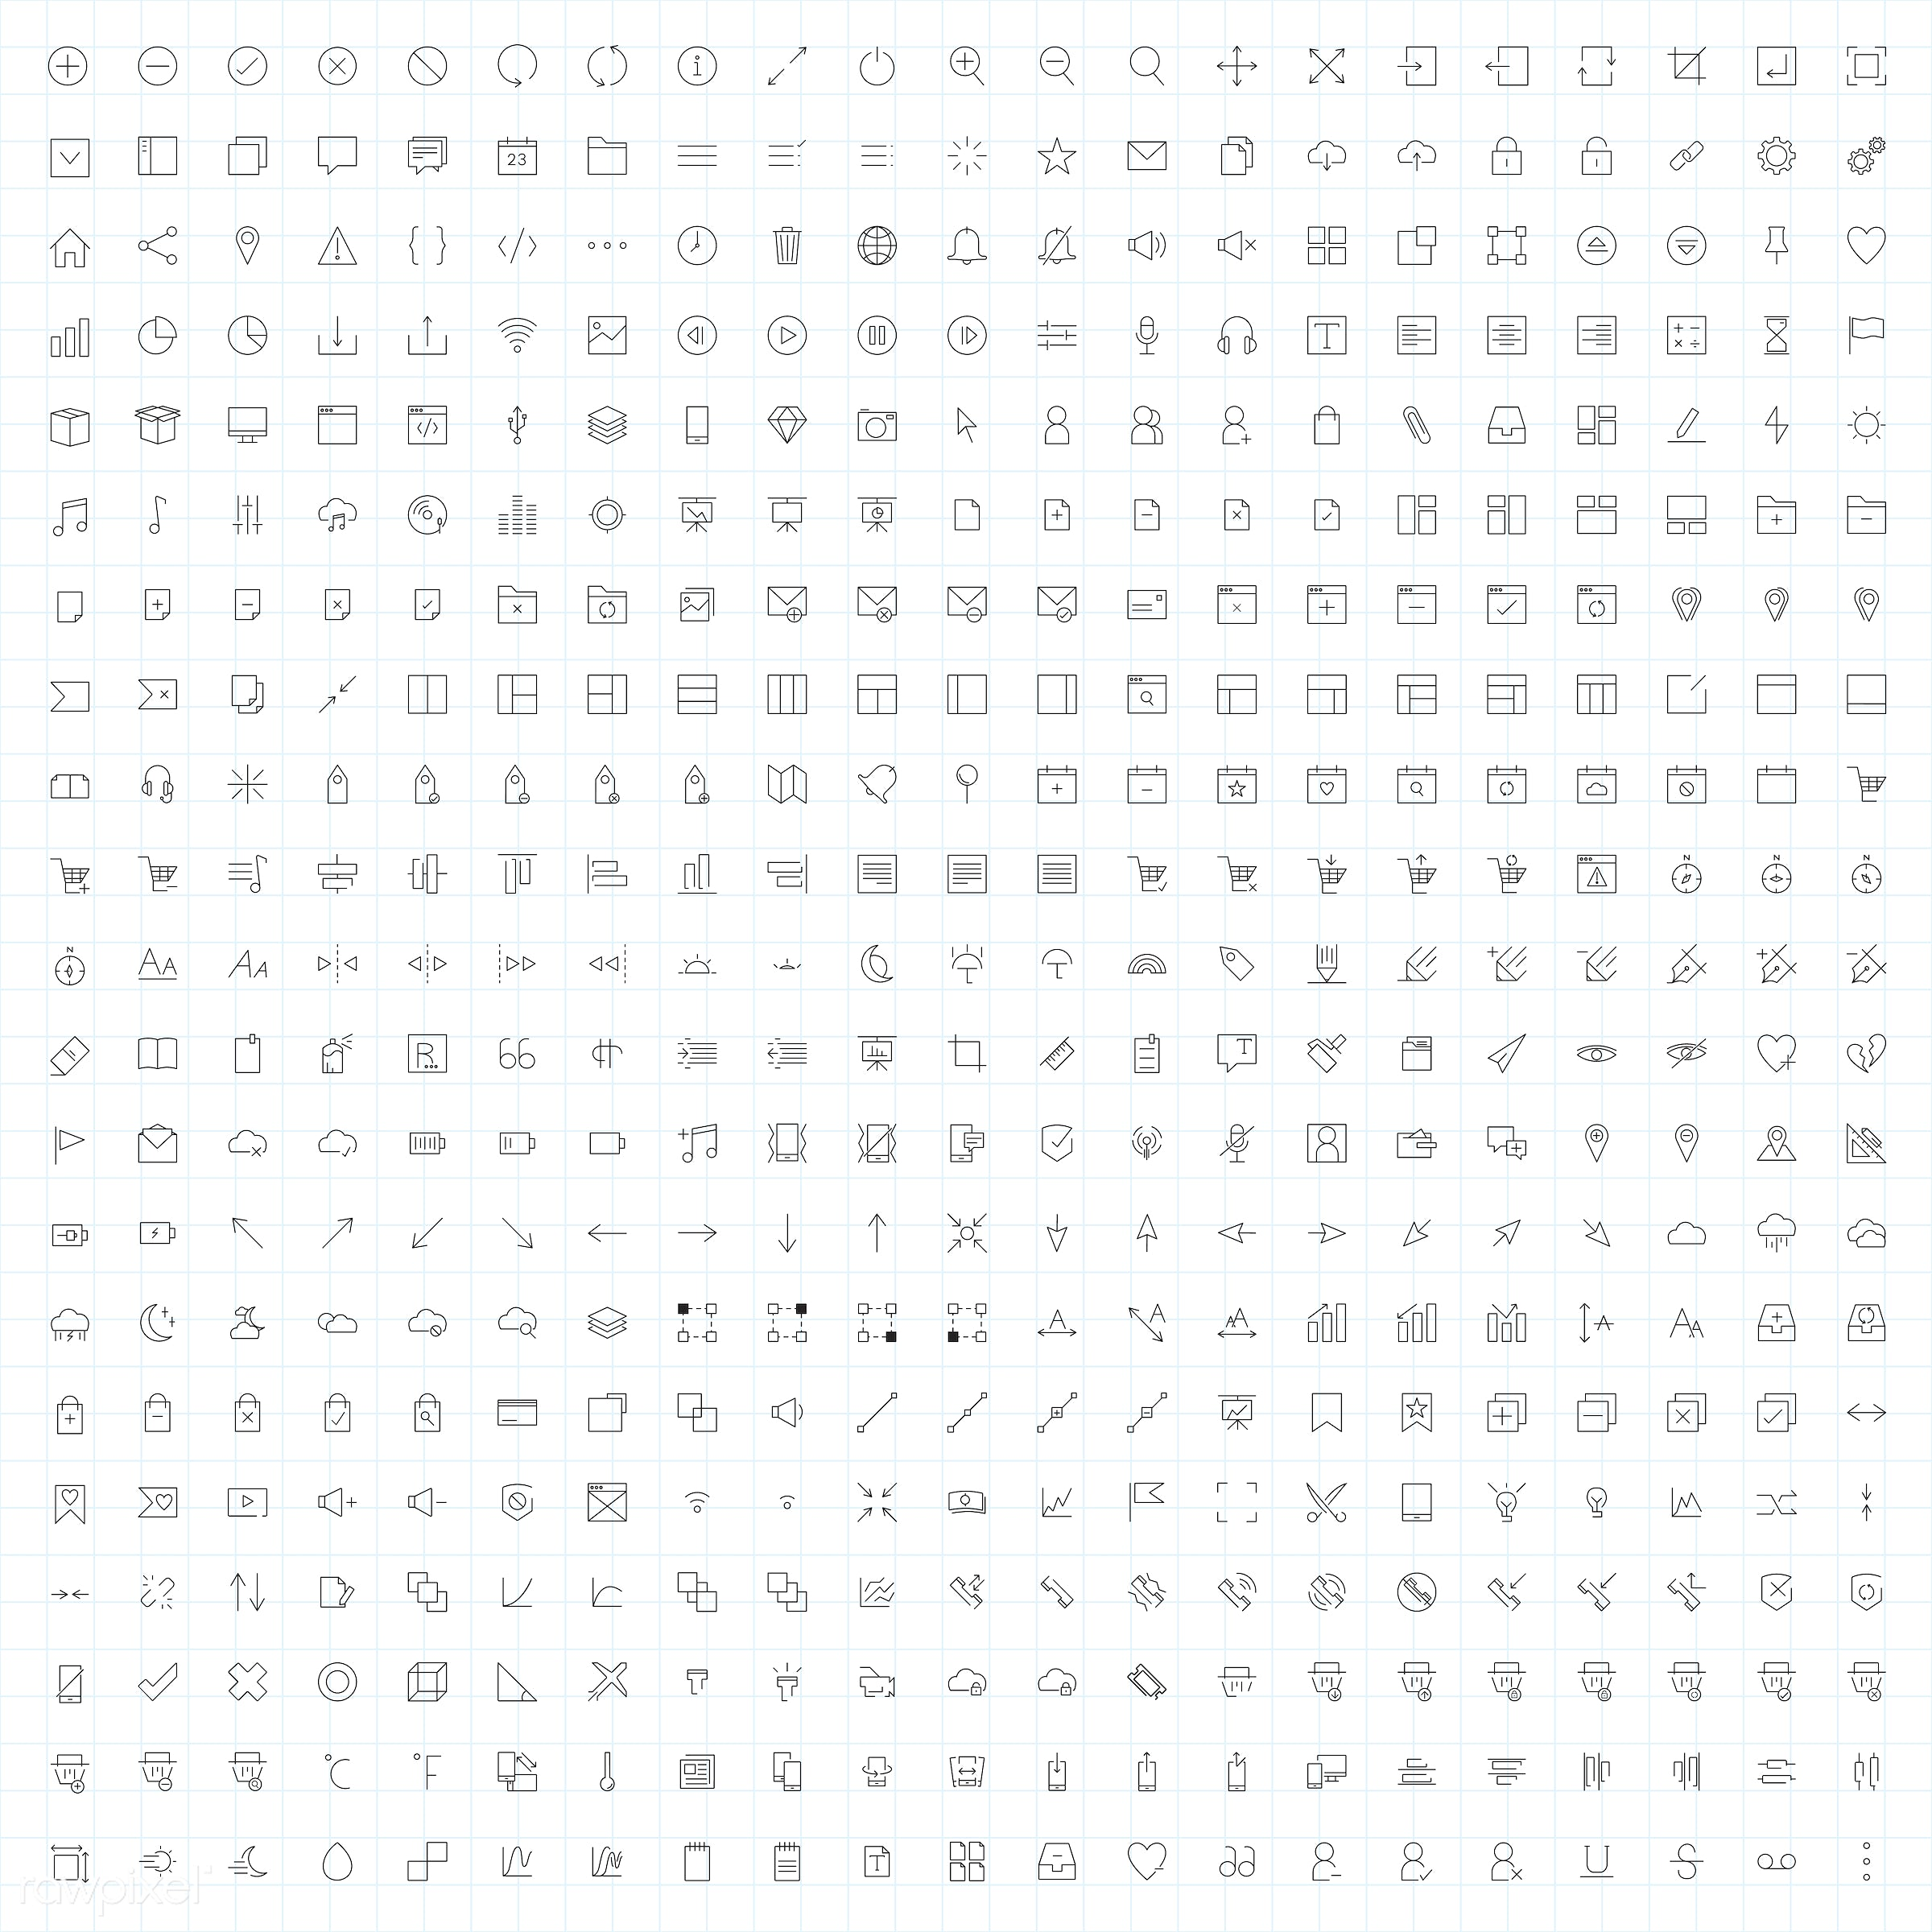 Set of computer icon vectors - icon, vector, computer, app, business, collection, digital, email, graphic, illustration,...